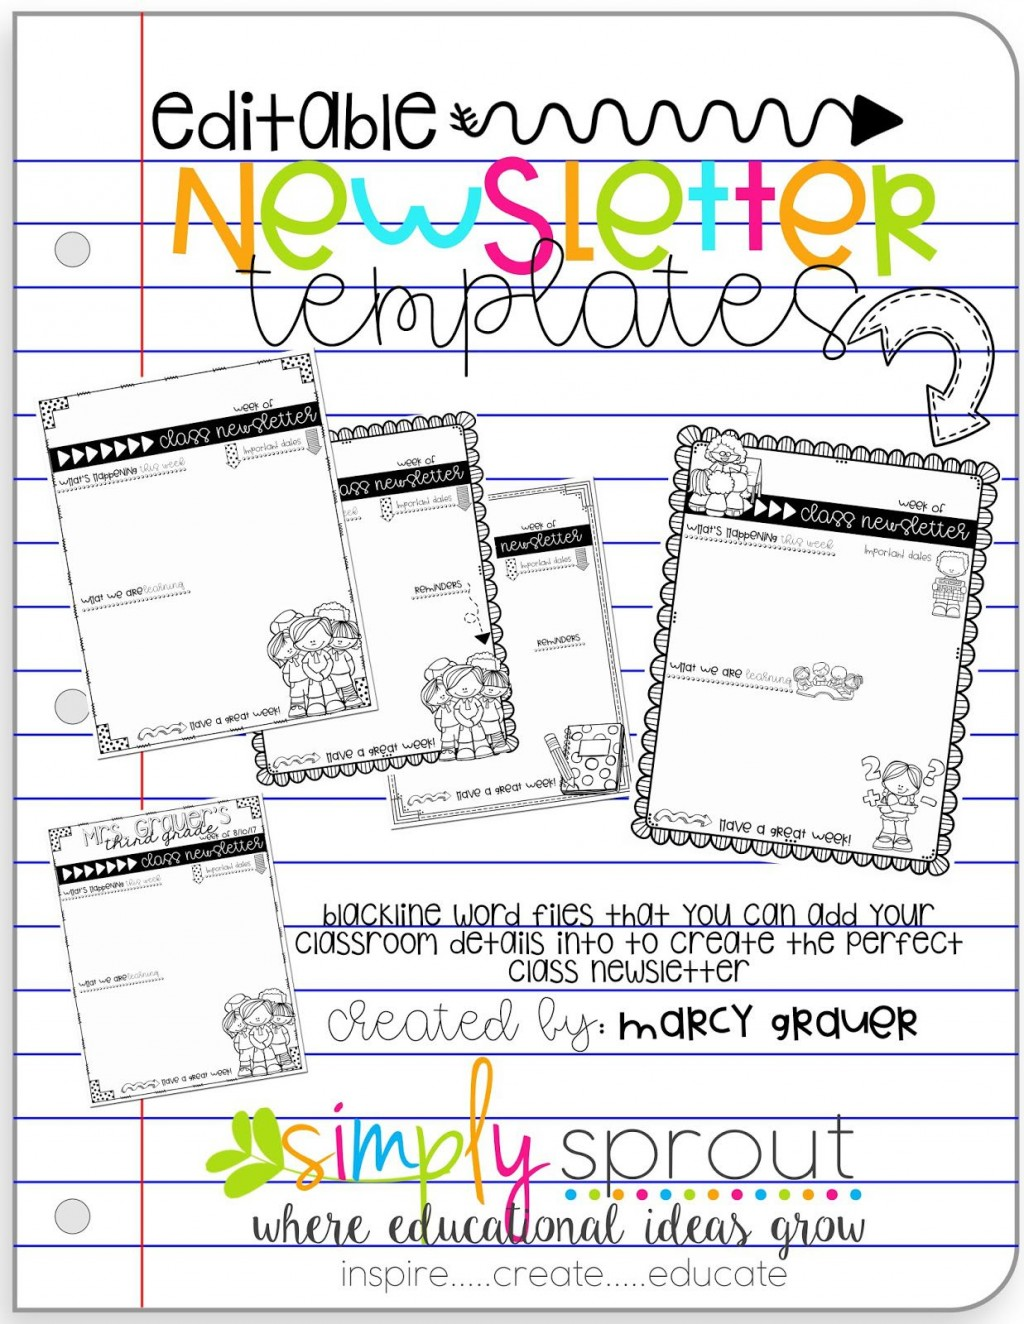 009 Surprising School Newsletter Template Word Design  Free Classroom For MicrosoftLarge